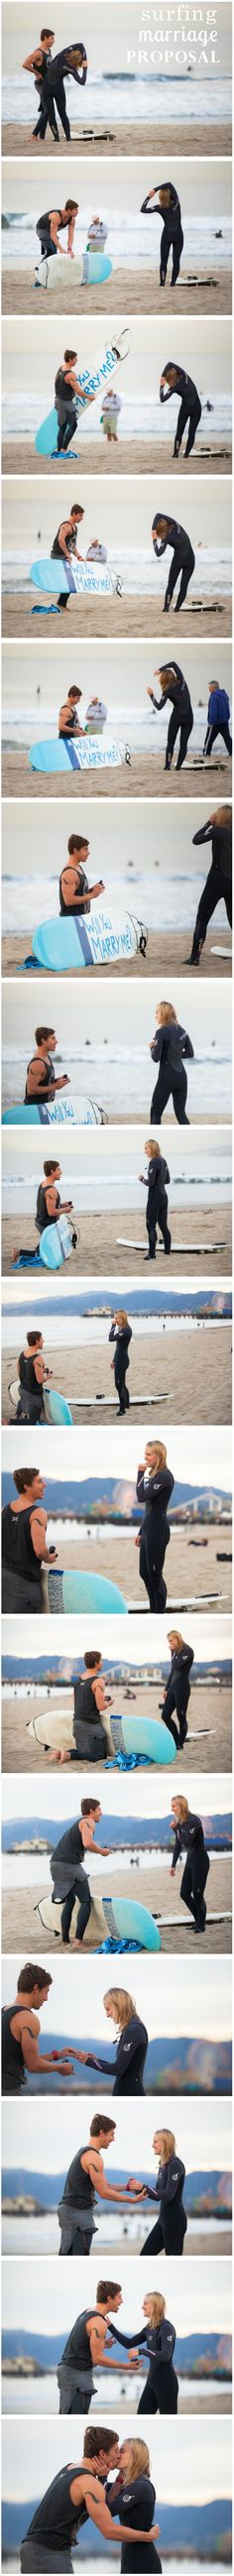 This proposal is EVERYTHING. http://howheasked.com/surfing-marriage-proposal